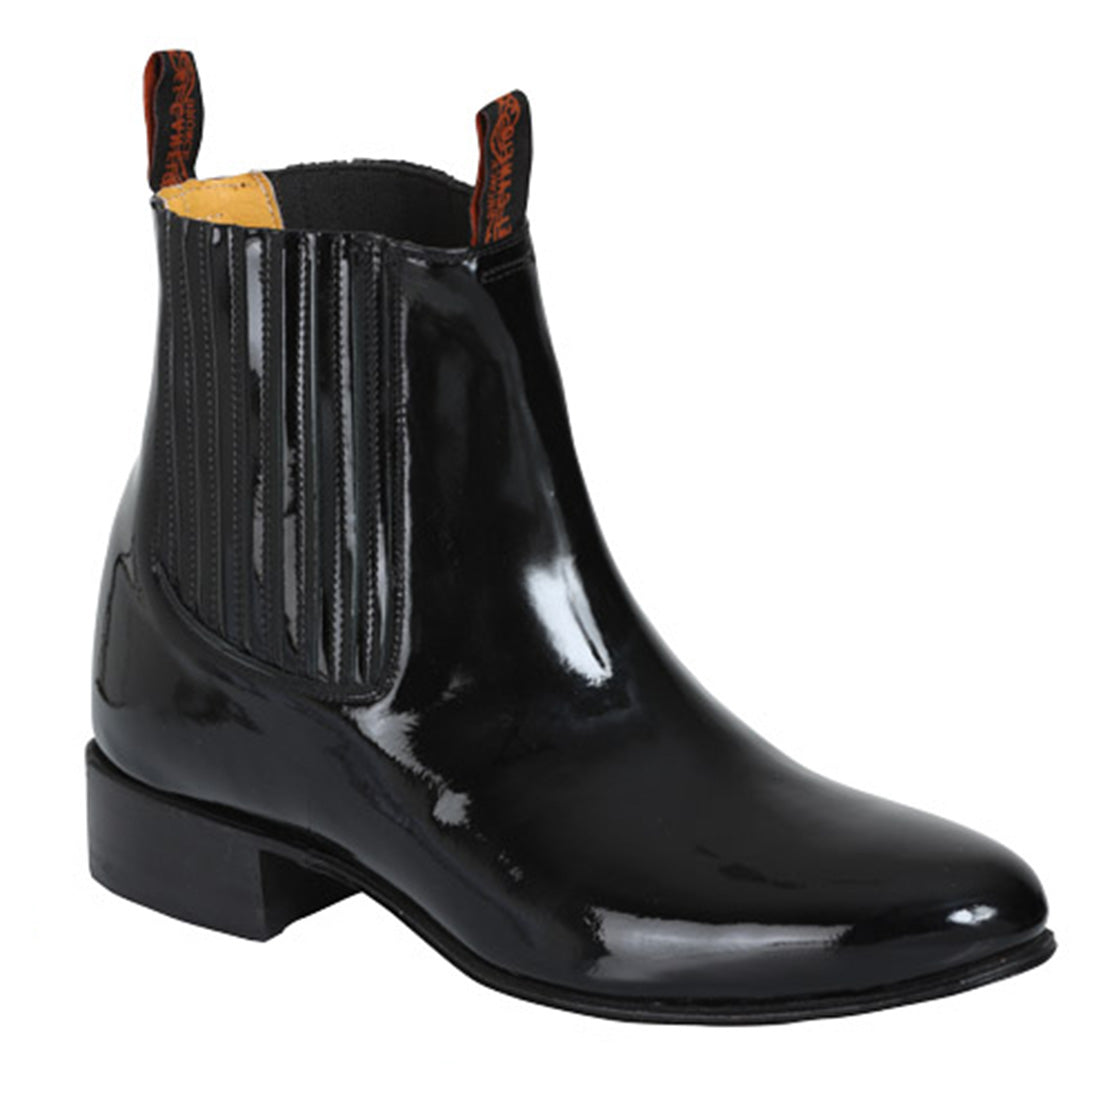 El Canelo Black Patent Leather Ankle Charro Boots